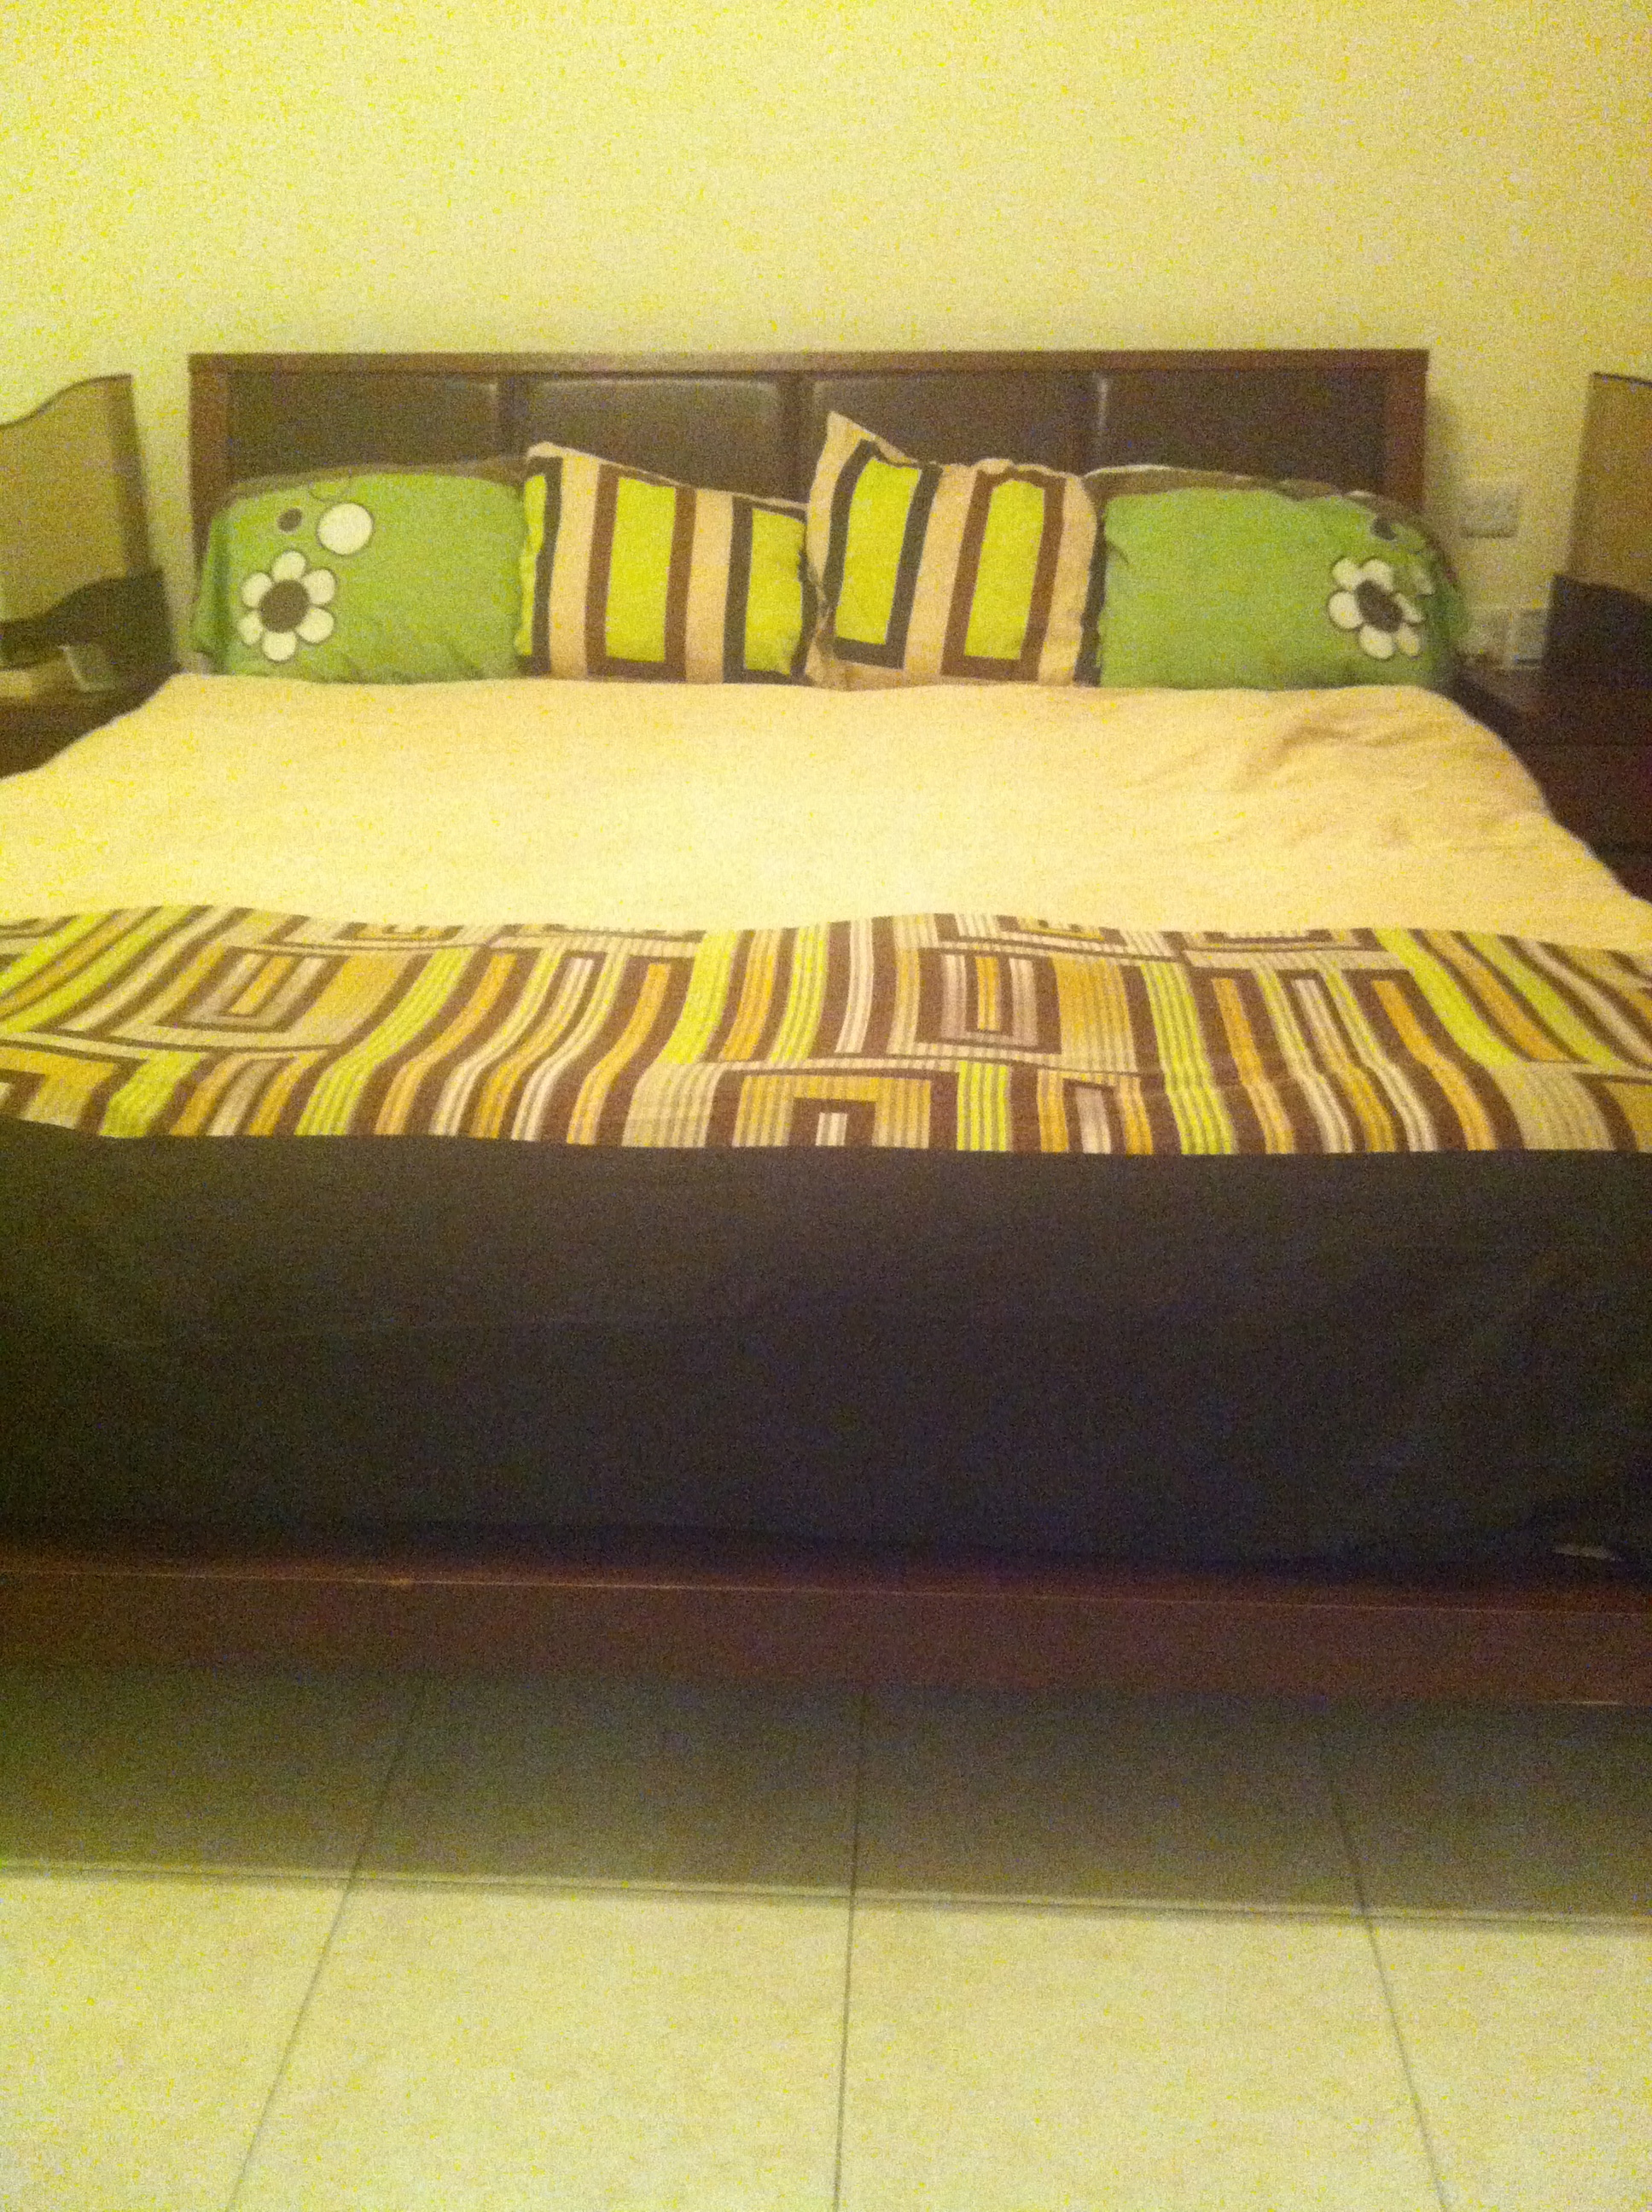 Et voila!  Bed freshly made.   (I was going for that 'previously slept in' look.)